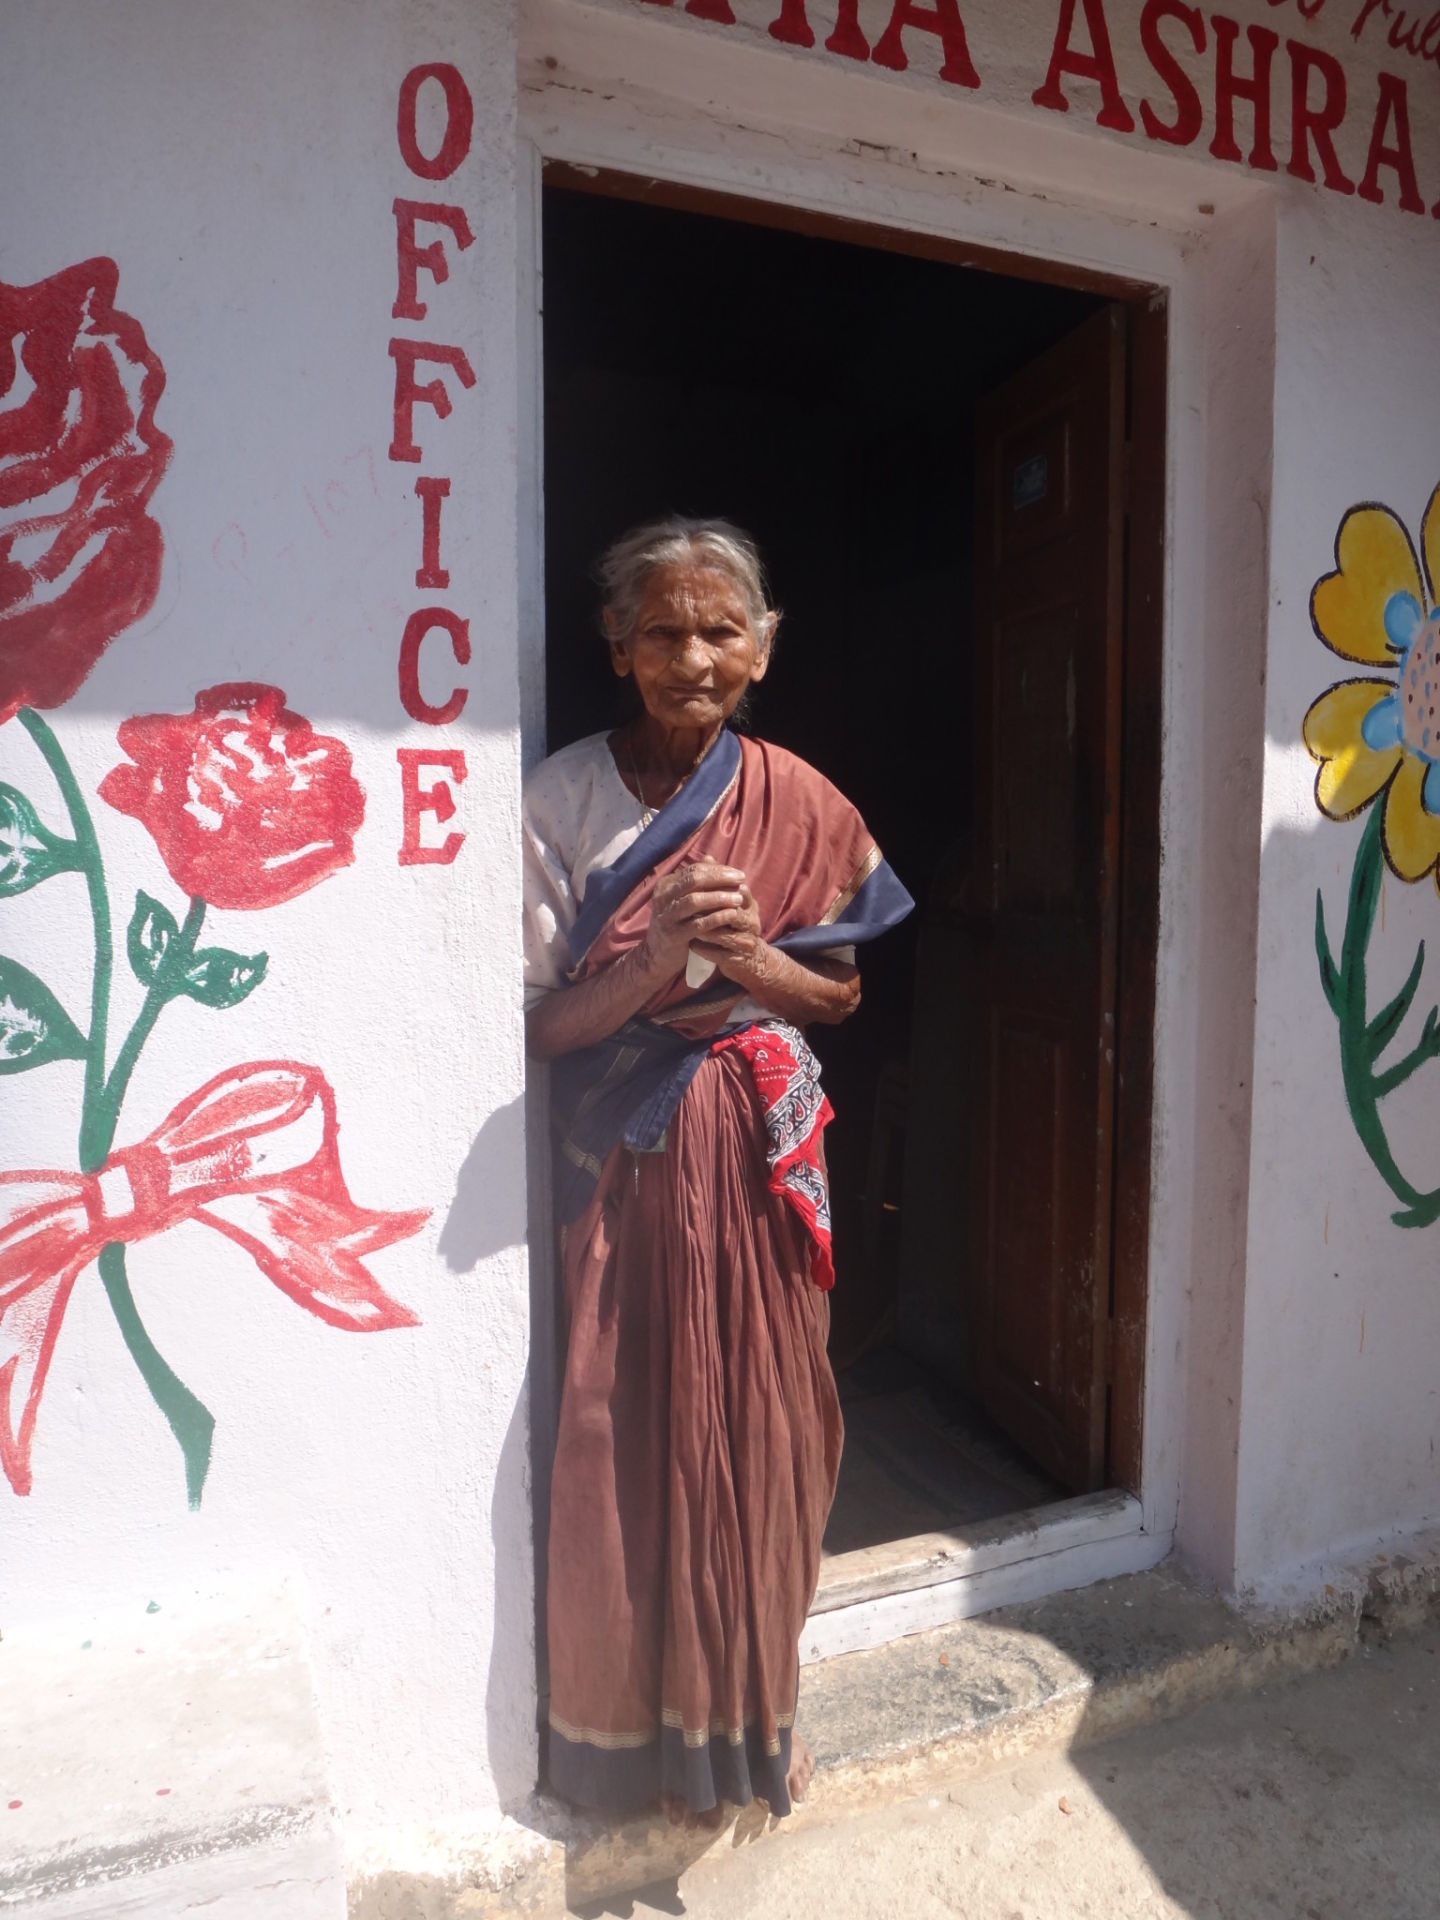 This old woman from an hospice for old folks in Bangalore, India showed great gratitude for the food we brought them.